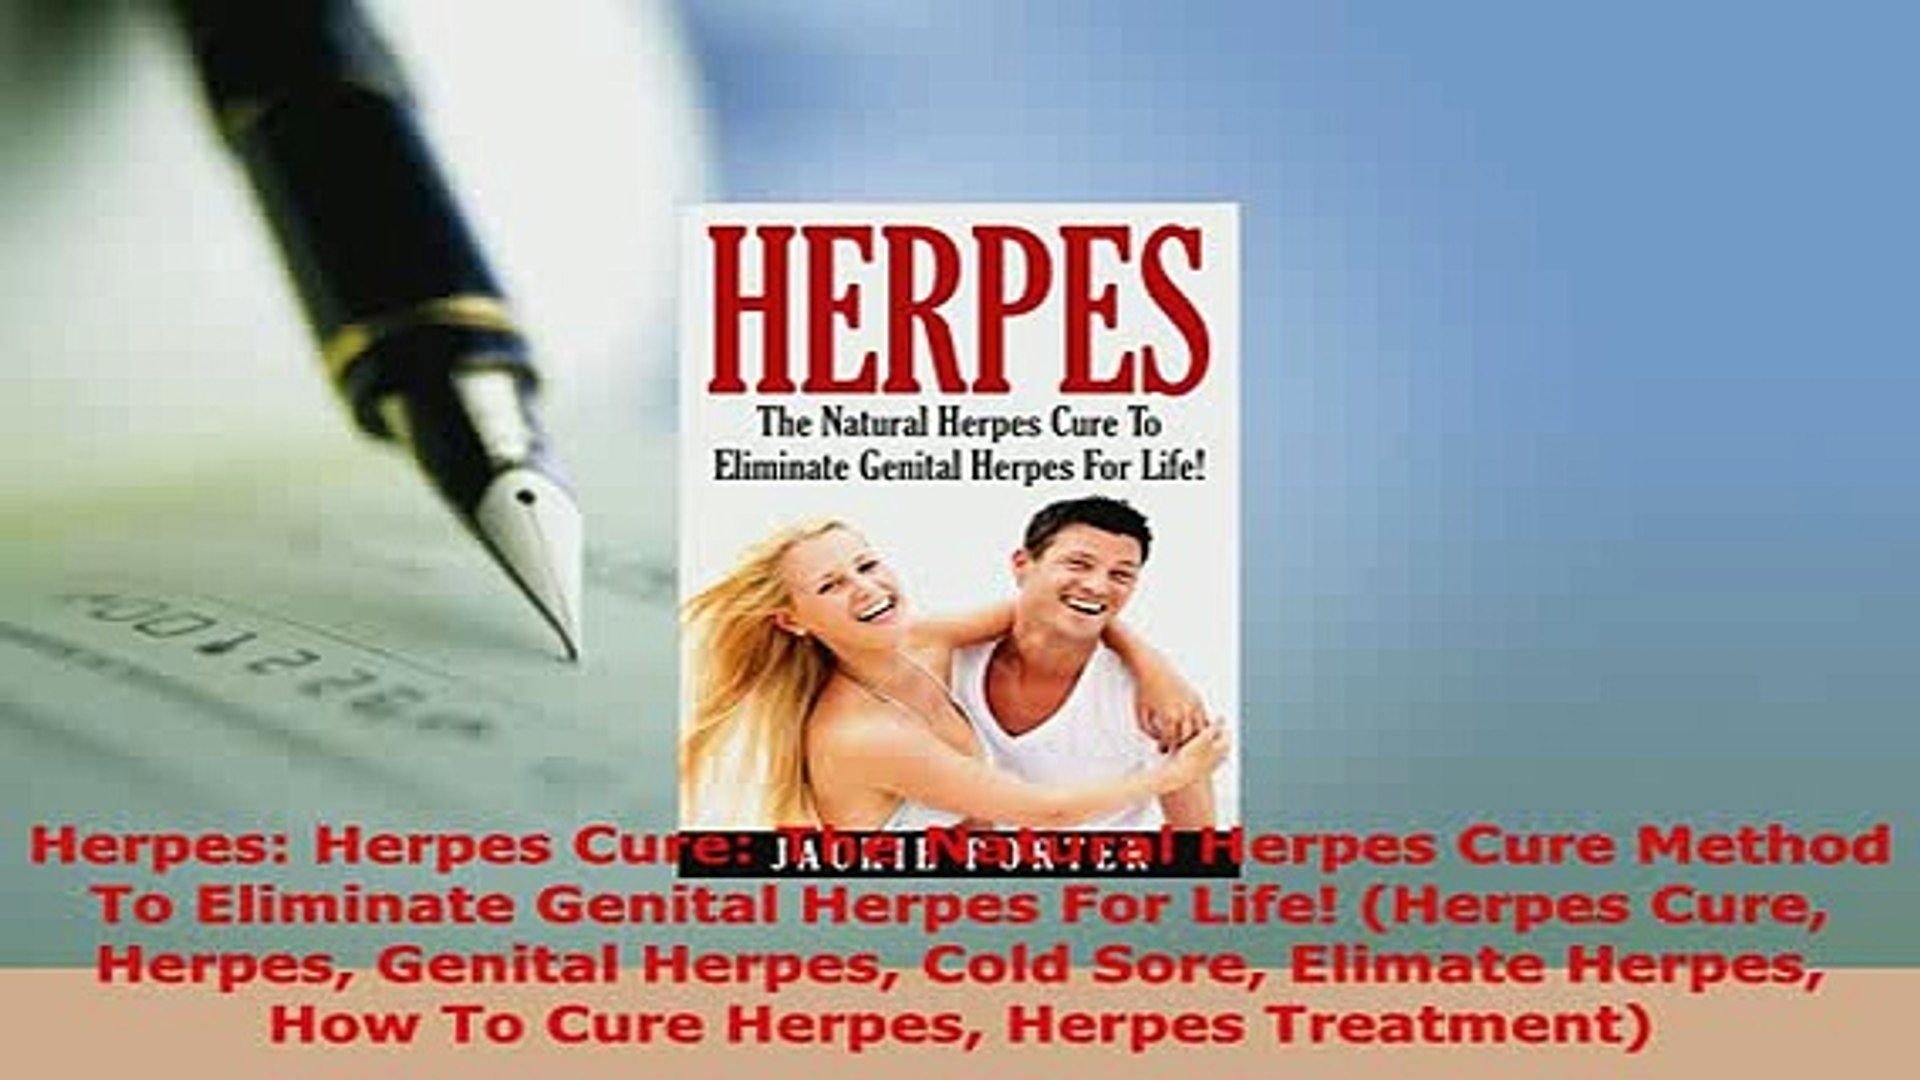 PDF Herpes Herpes Cure The Natural Herpes Cure Method To Eliminate Genital  Herpes For Life Free Books